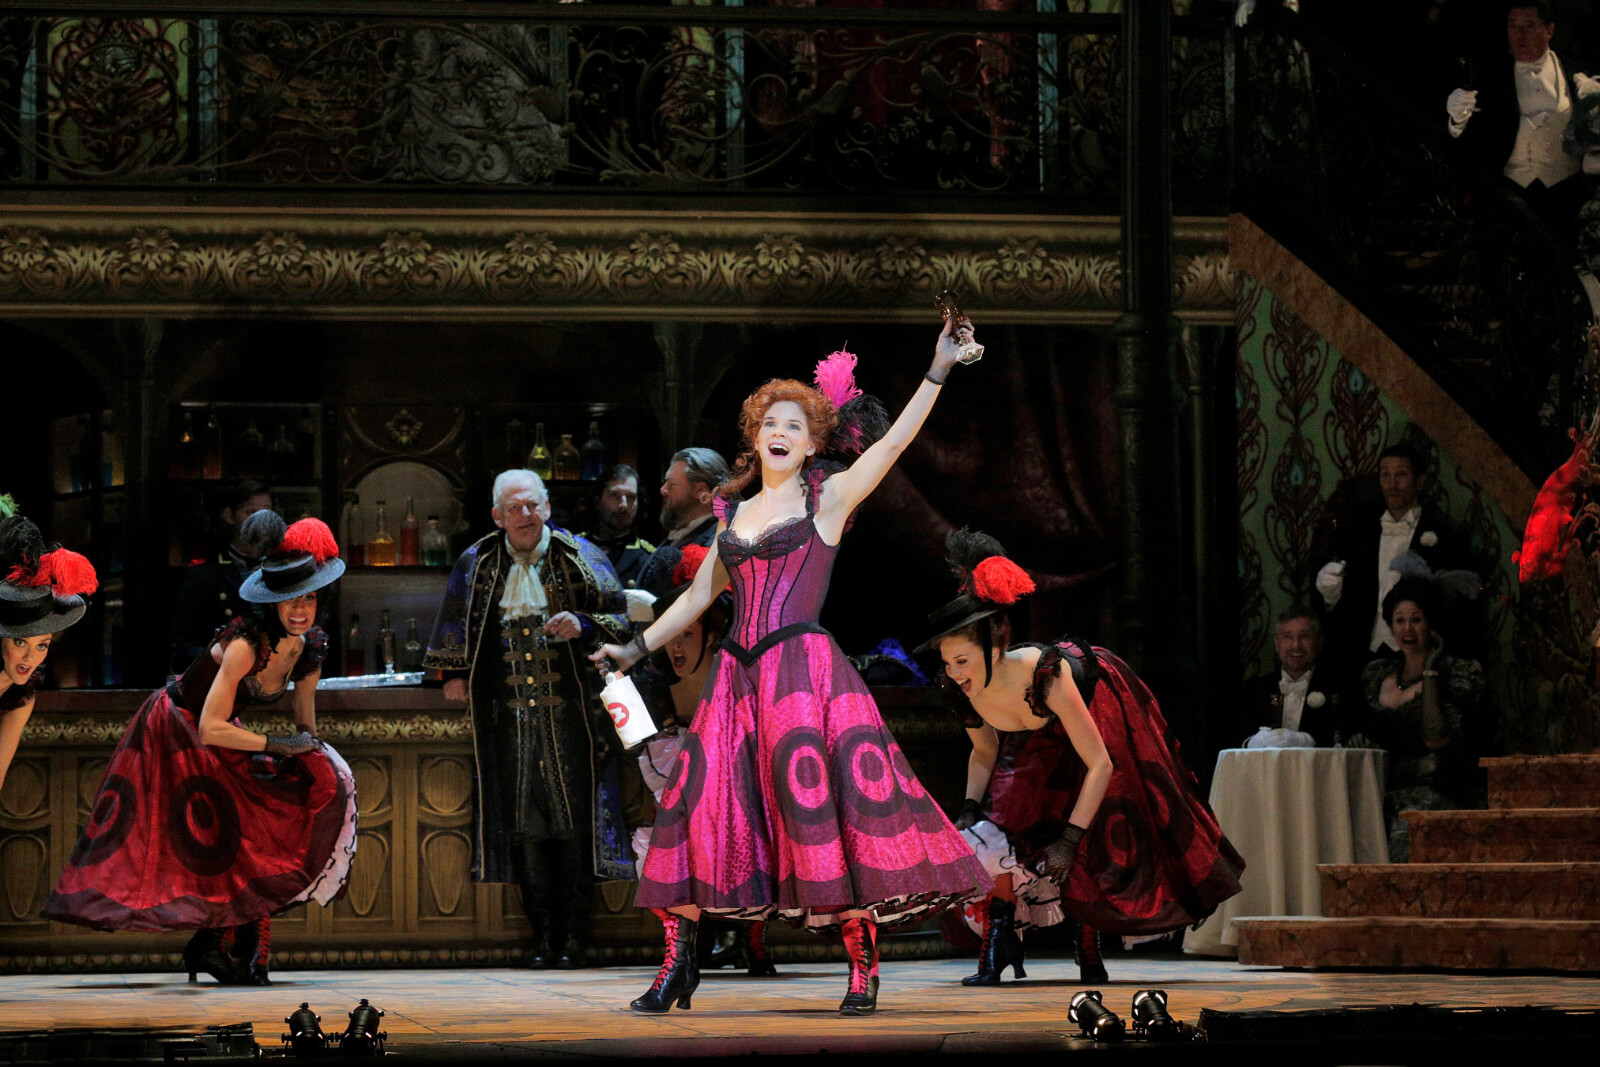 """Valencienne (Kelli O'Hara) performing """"We're the Ladies of the Chorus"""". She is in a Magenta Can Can dress singing with a bottle of wine."""